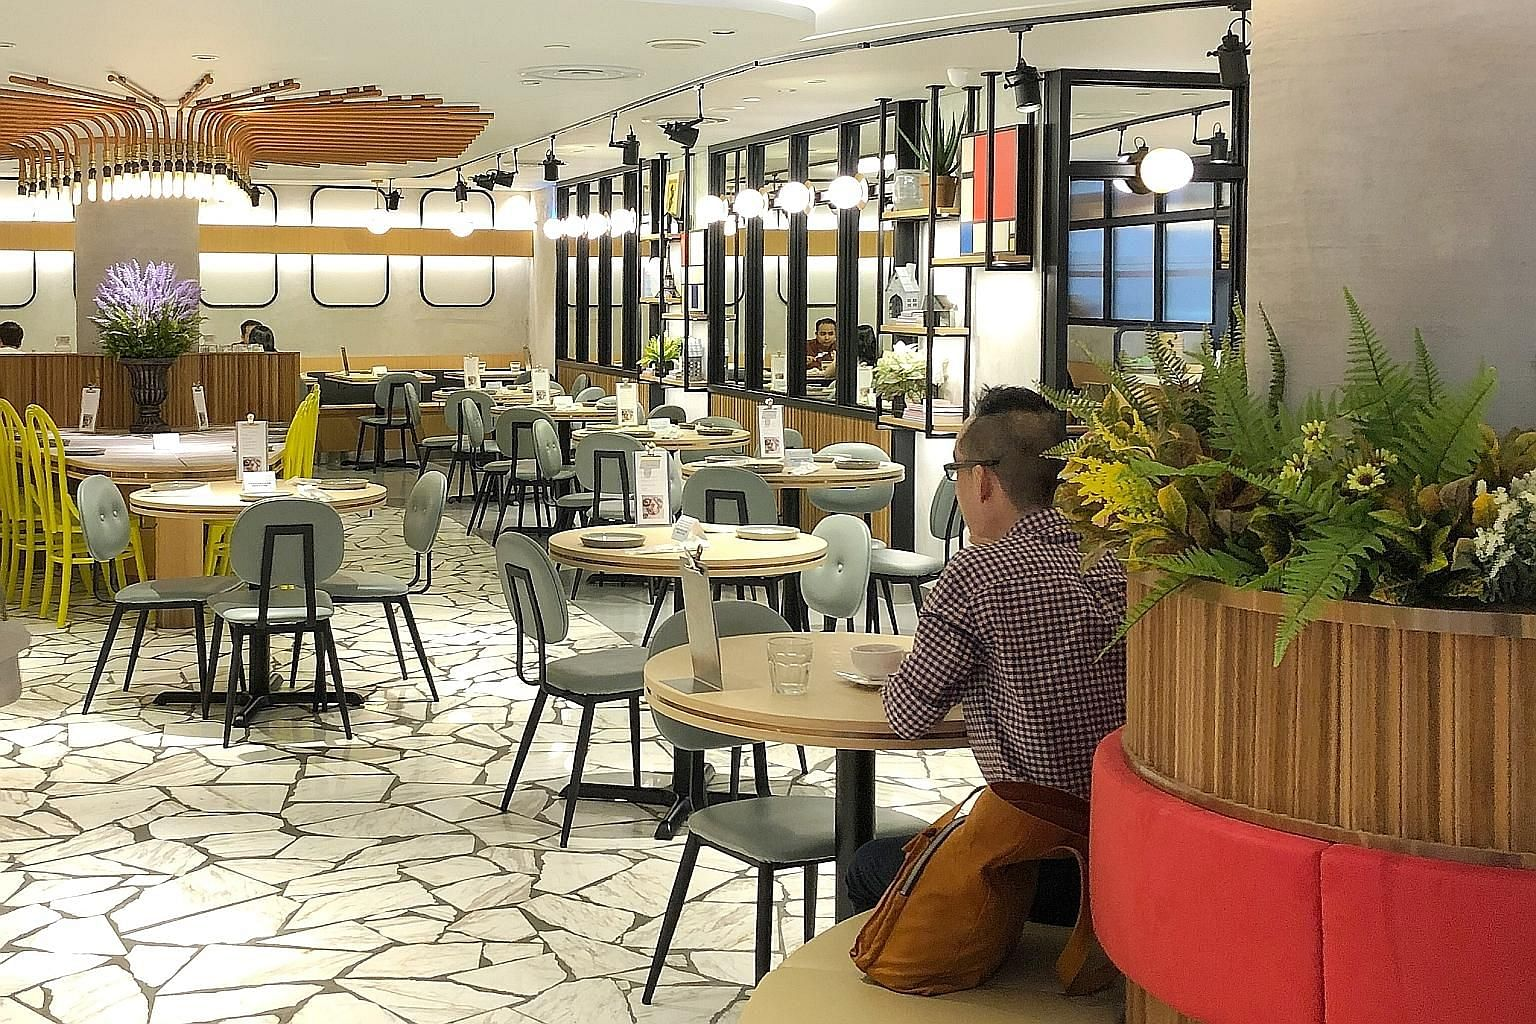 Business in the F&B sector has reportedly gone down 50 to 80 per cent, in an industry which contributes to 0.8 per cent of Singapore's gross domestic product.